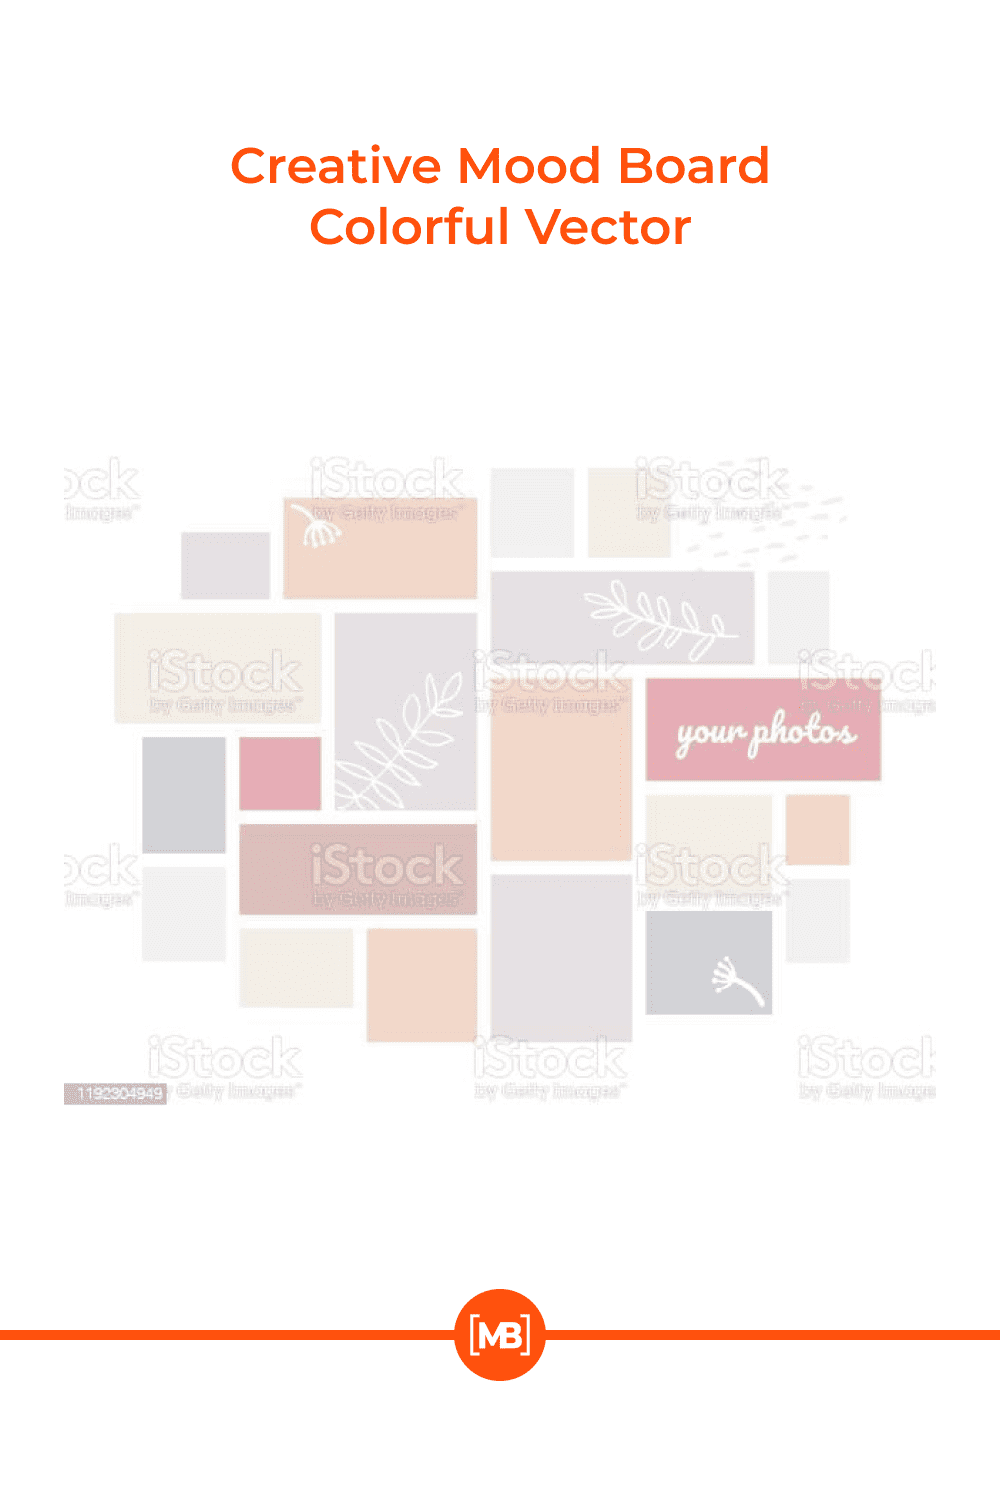 Creative mood board - colorful vector background template on white background.